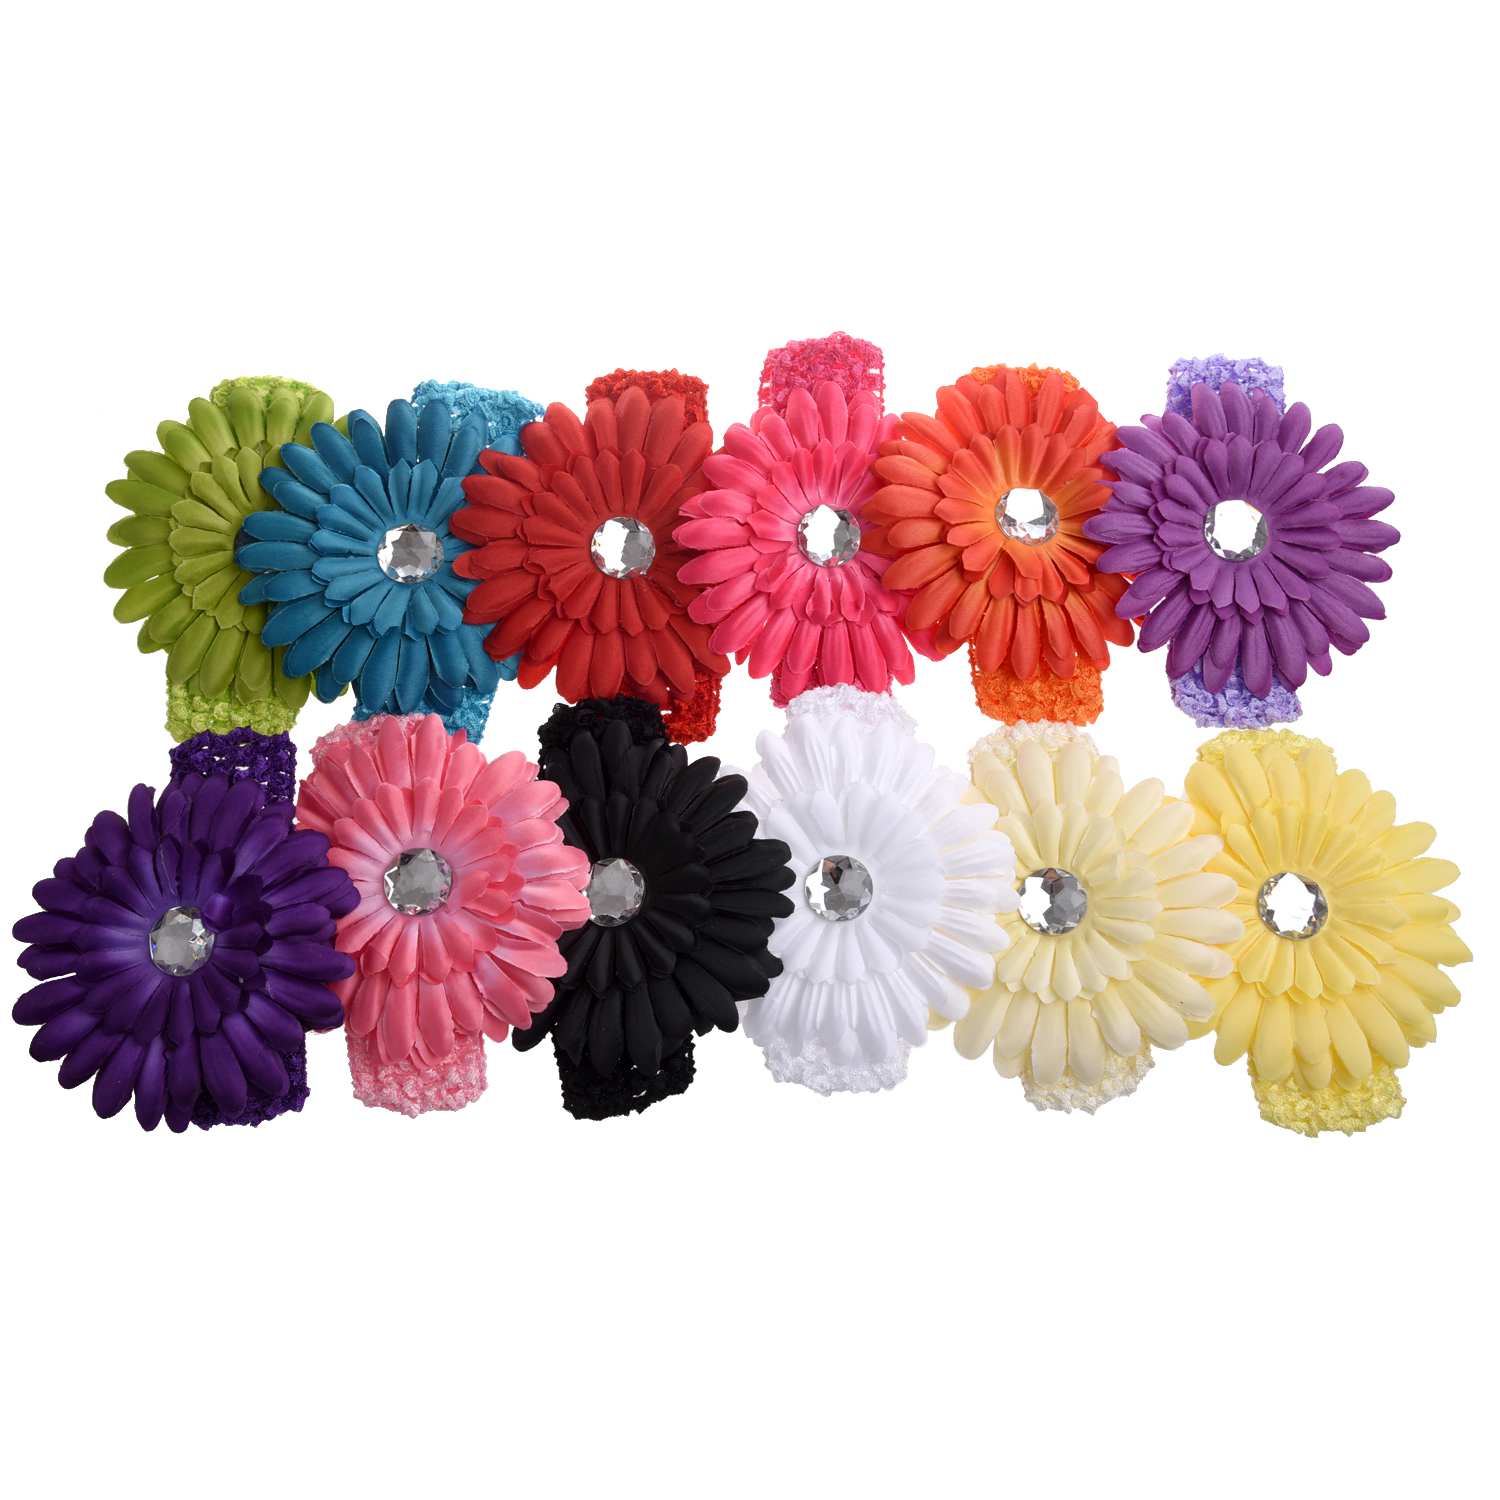 Color Daisies: A Dozen Of Assorted Colors Daisy Flower Clip Crocheted